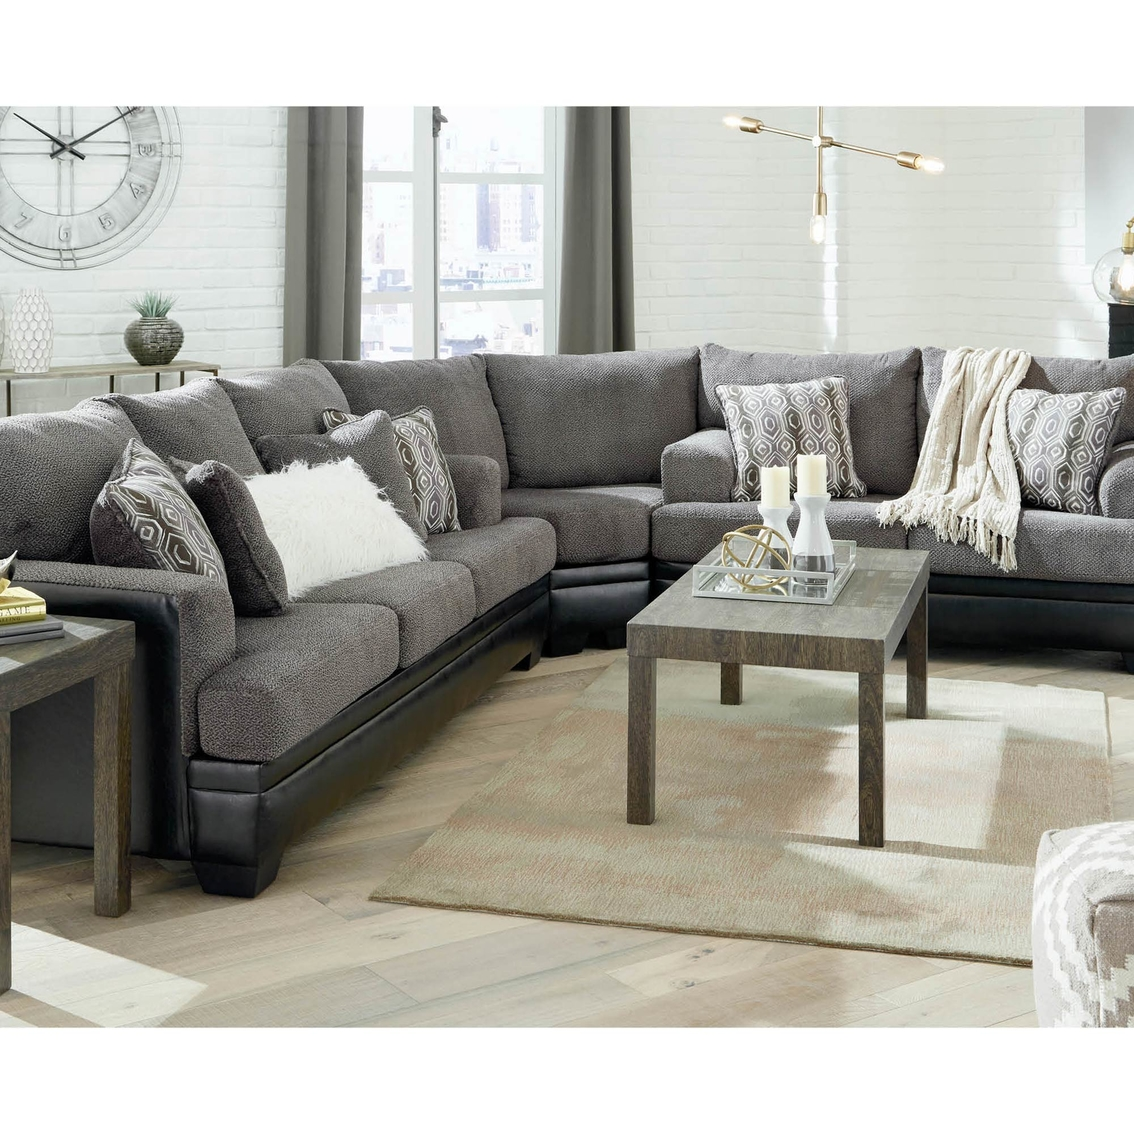 Couches Sleeper Signature Design By Ashley Millingar 3 Pc Sleeper Sectional Sofa